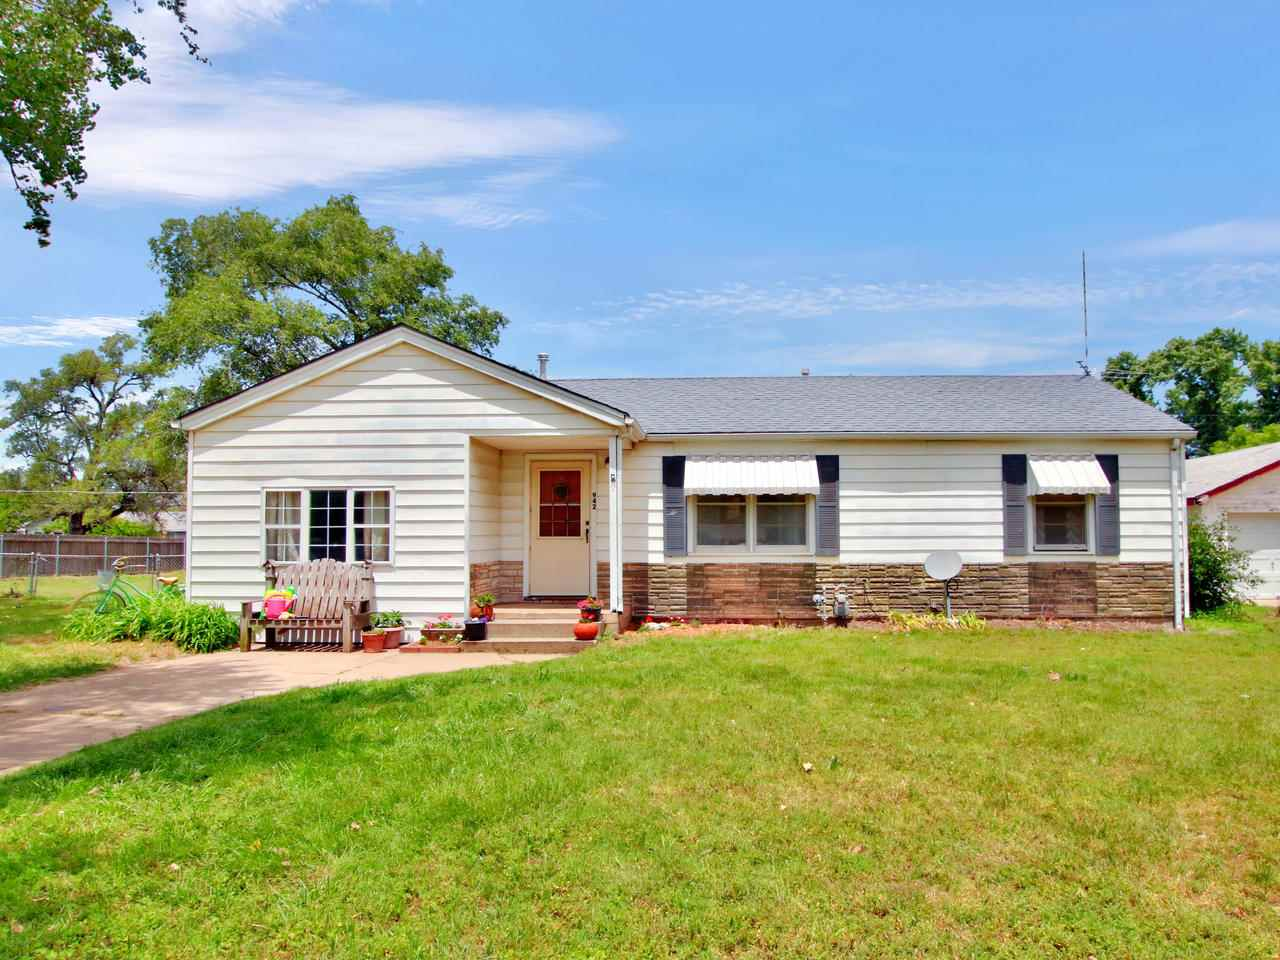 Have you been searching for a DaRLiNG home that is reasonably priced?  This cute ranch features a sp